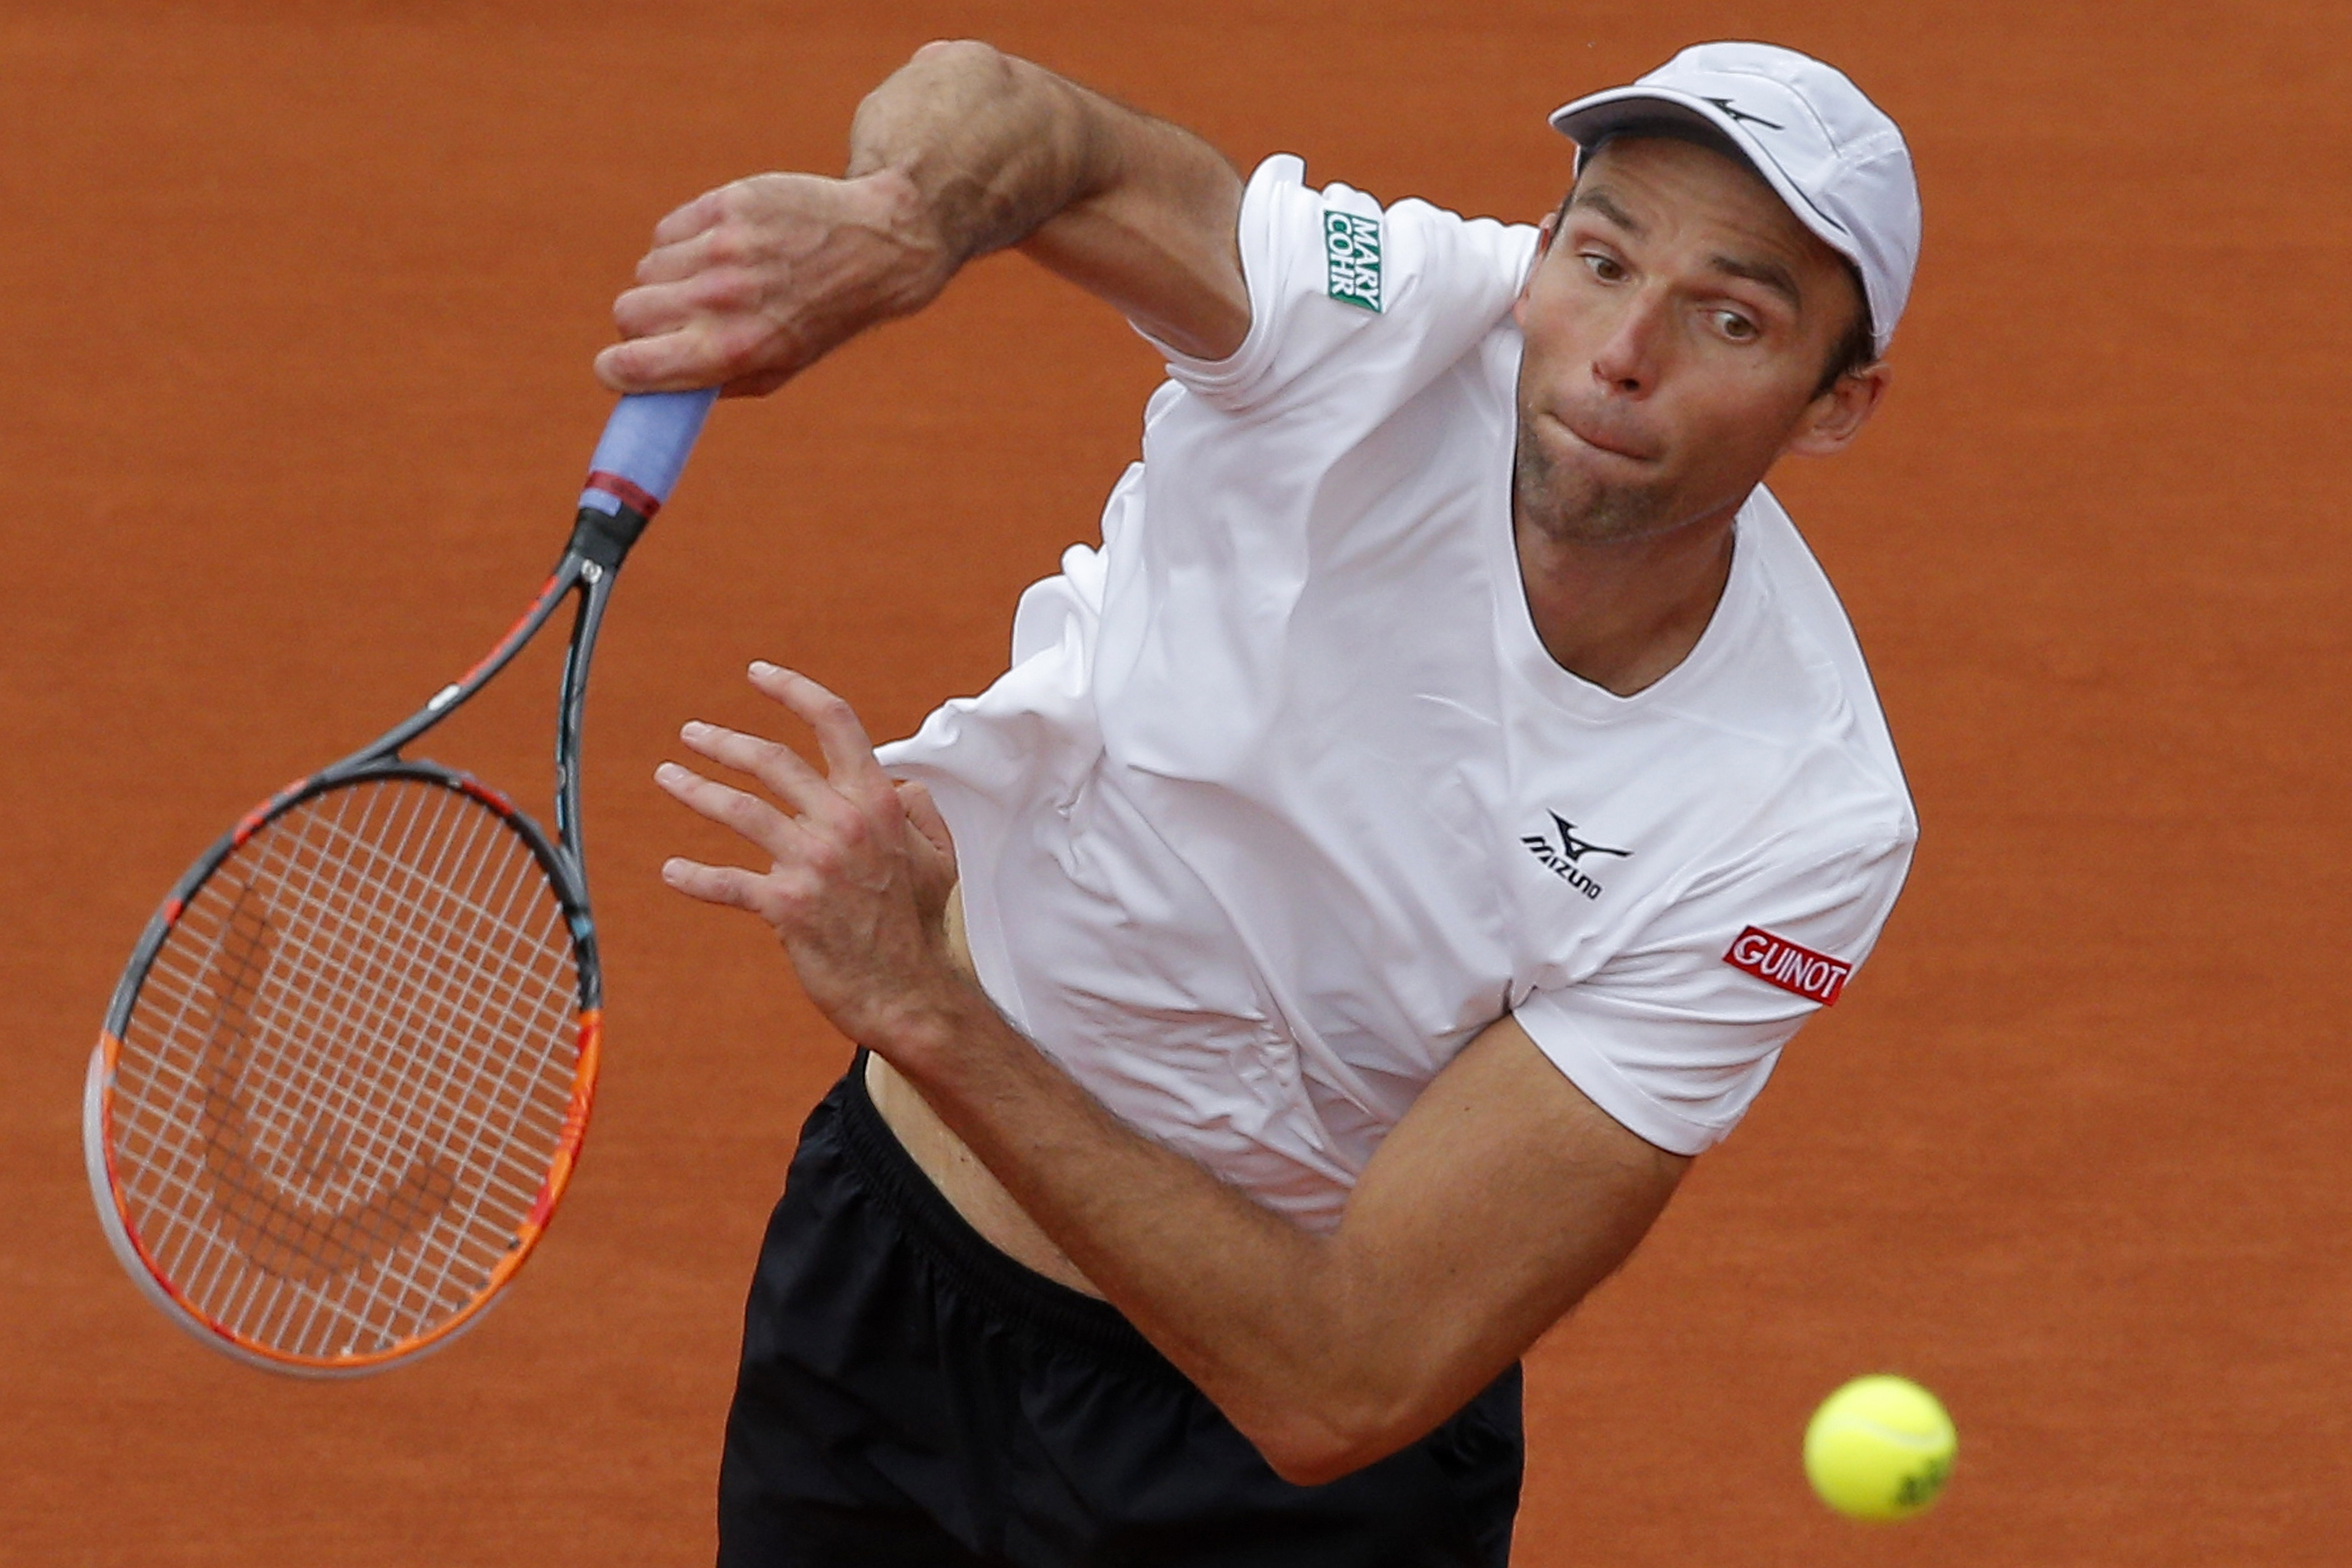 Croatia's Ivo Karlovic serves the ball to Britain's Andy Murray during their third round match of the French Open tennis tournament at the Roland Garros stadium, Friday, May 27, 2016 in Paris. (AP Photo/Christophe Ena)